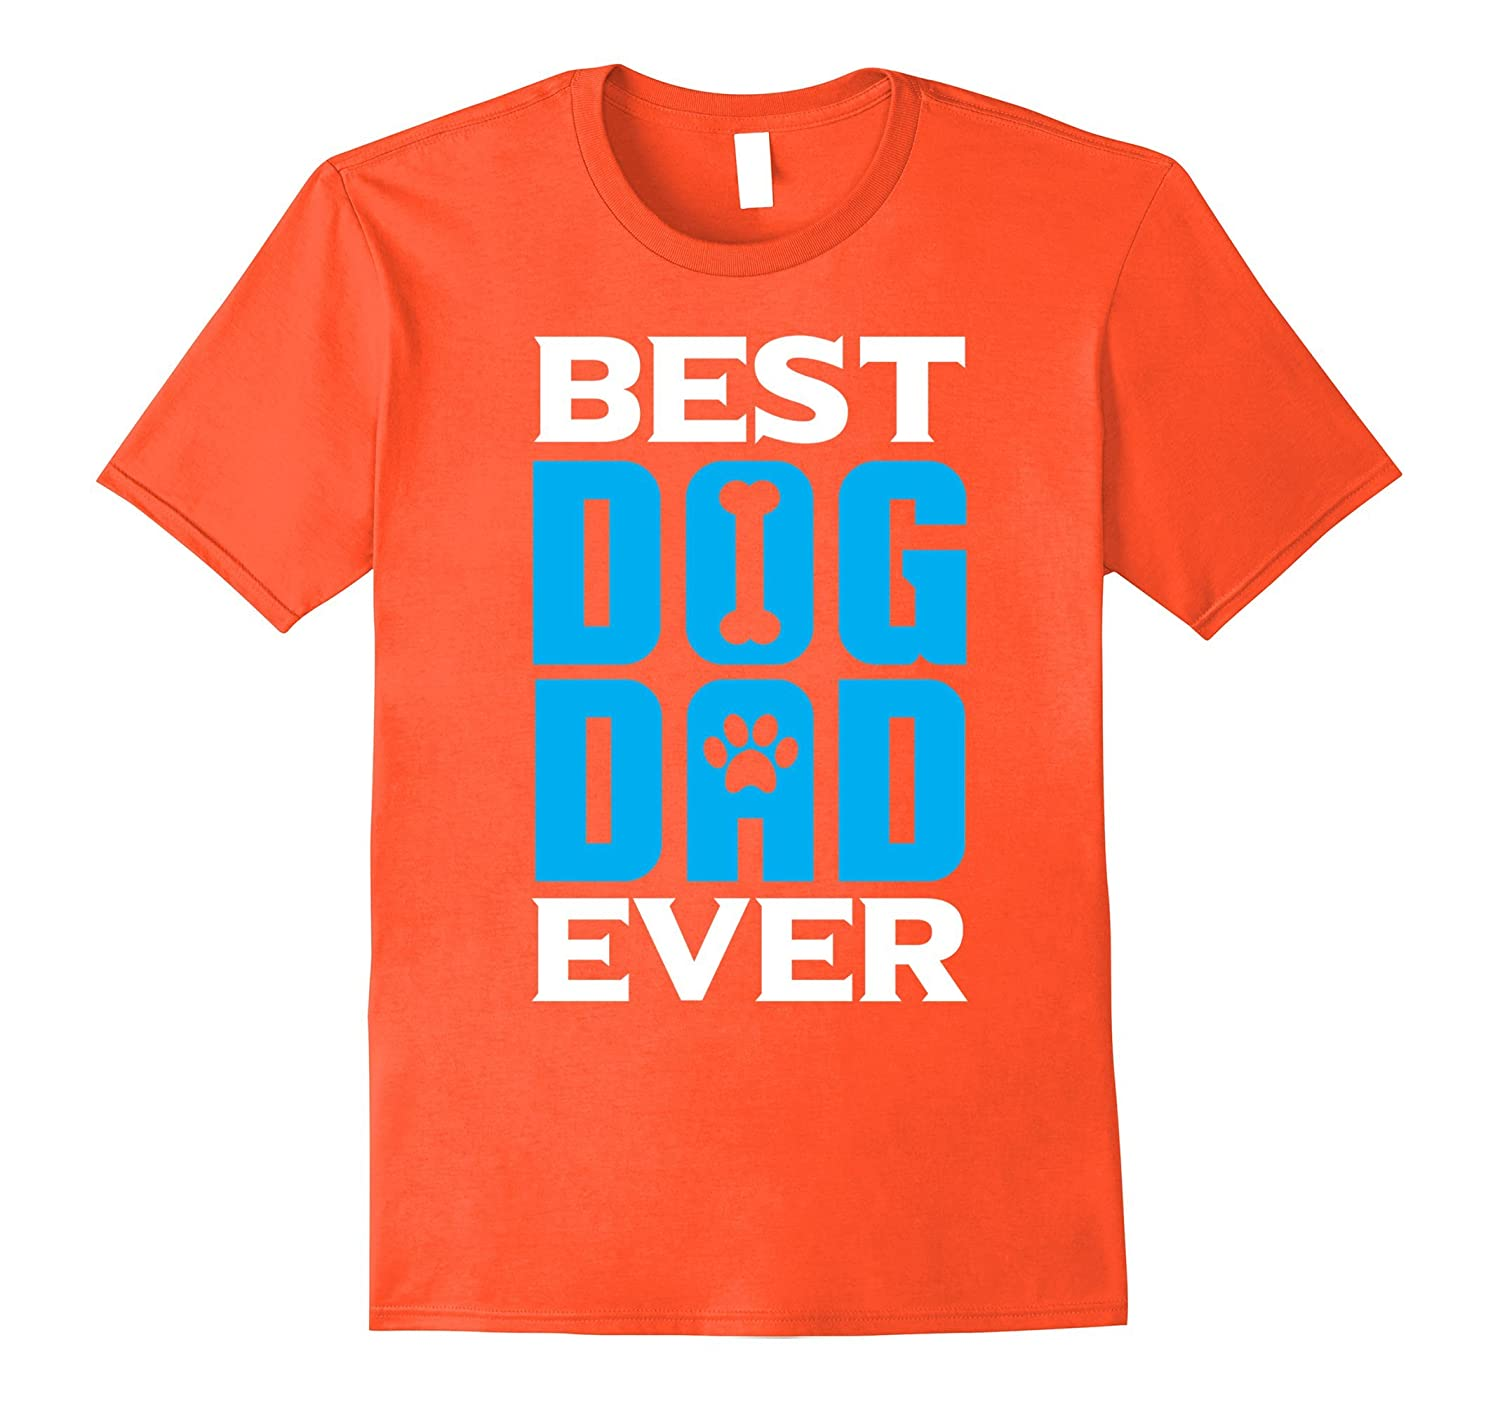 1da4a1a7 Best Dog Dad Ever T-Shirt Funny Dog Lover Shirt Mens Dog Tee-TH ...